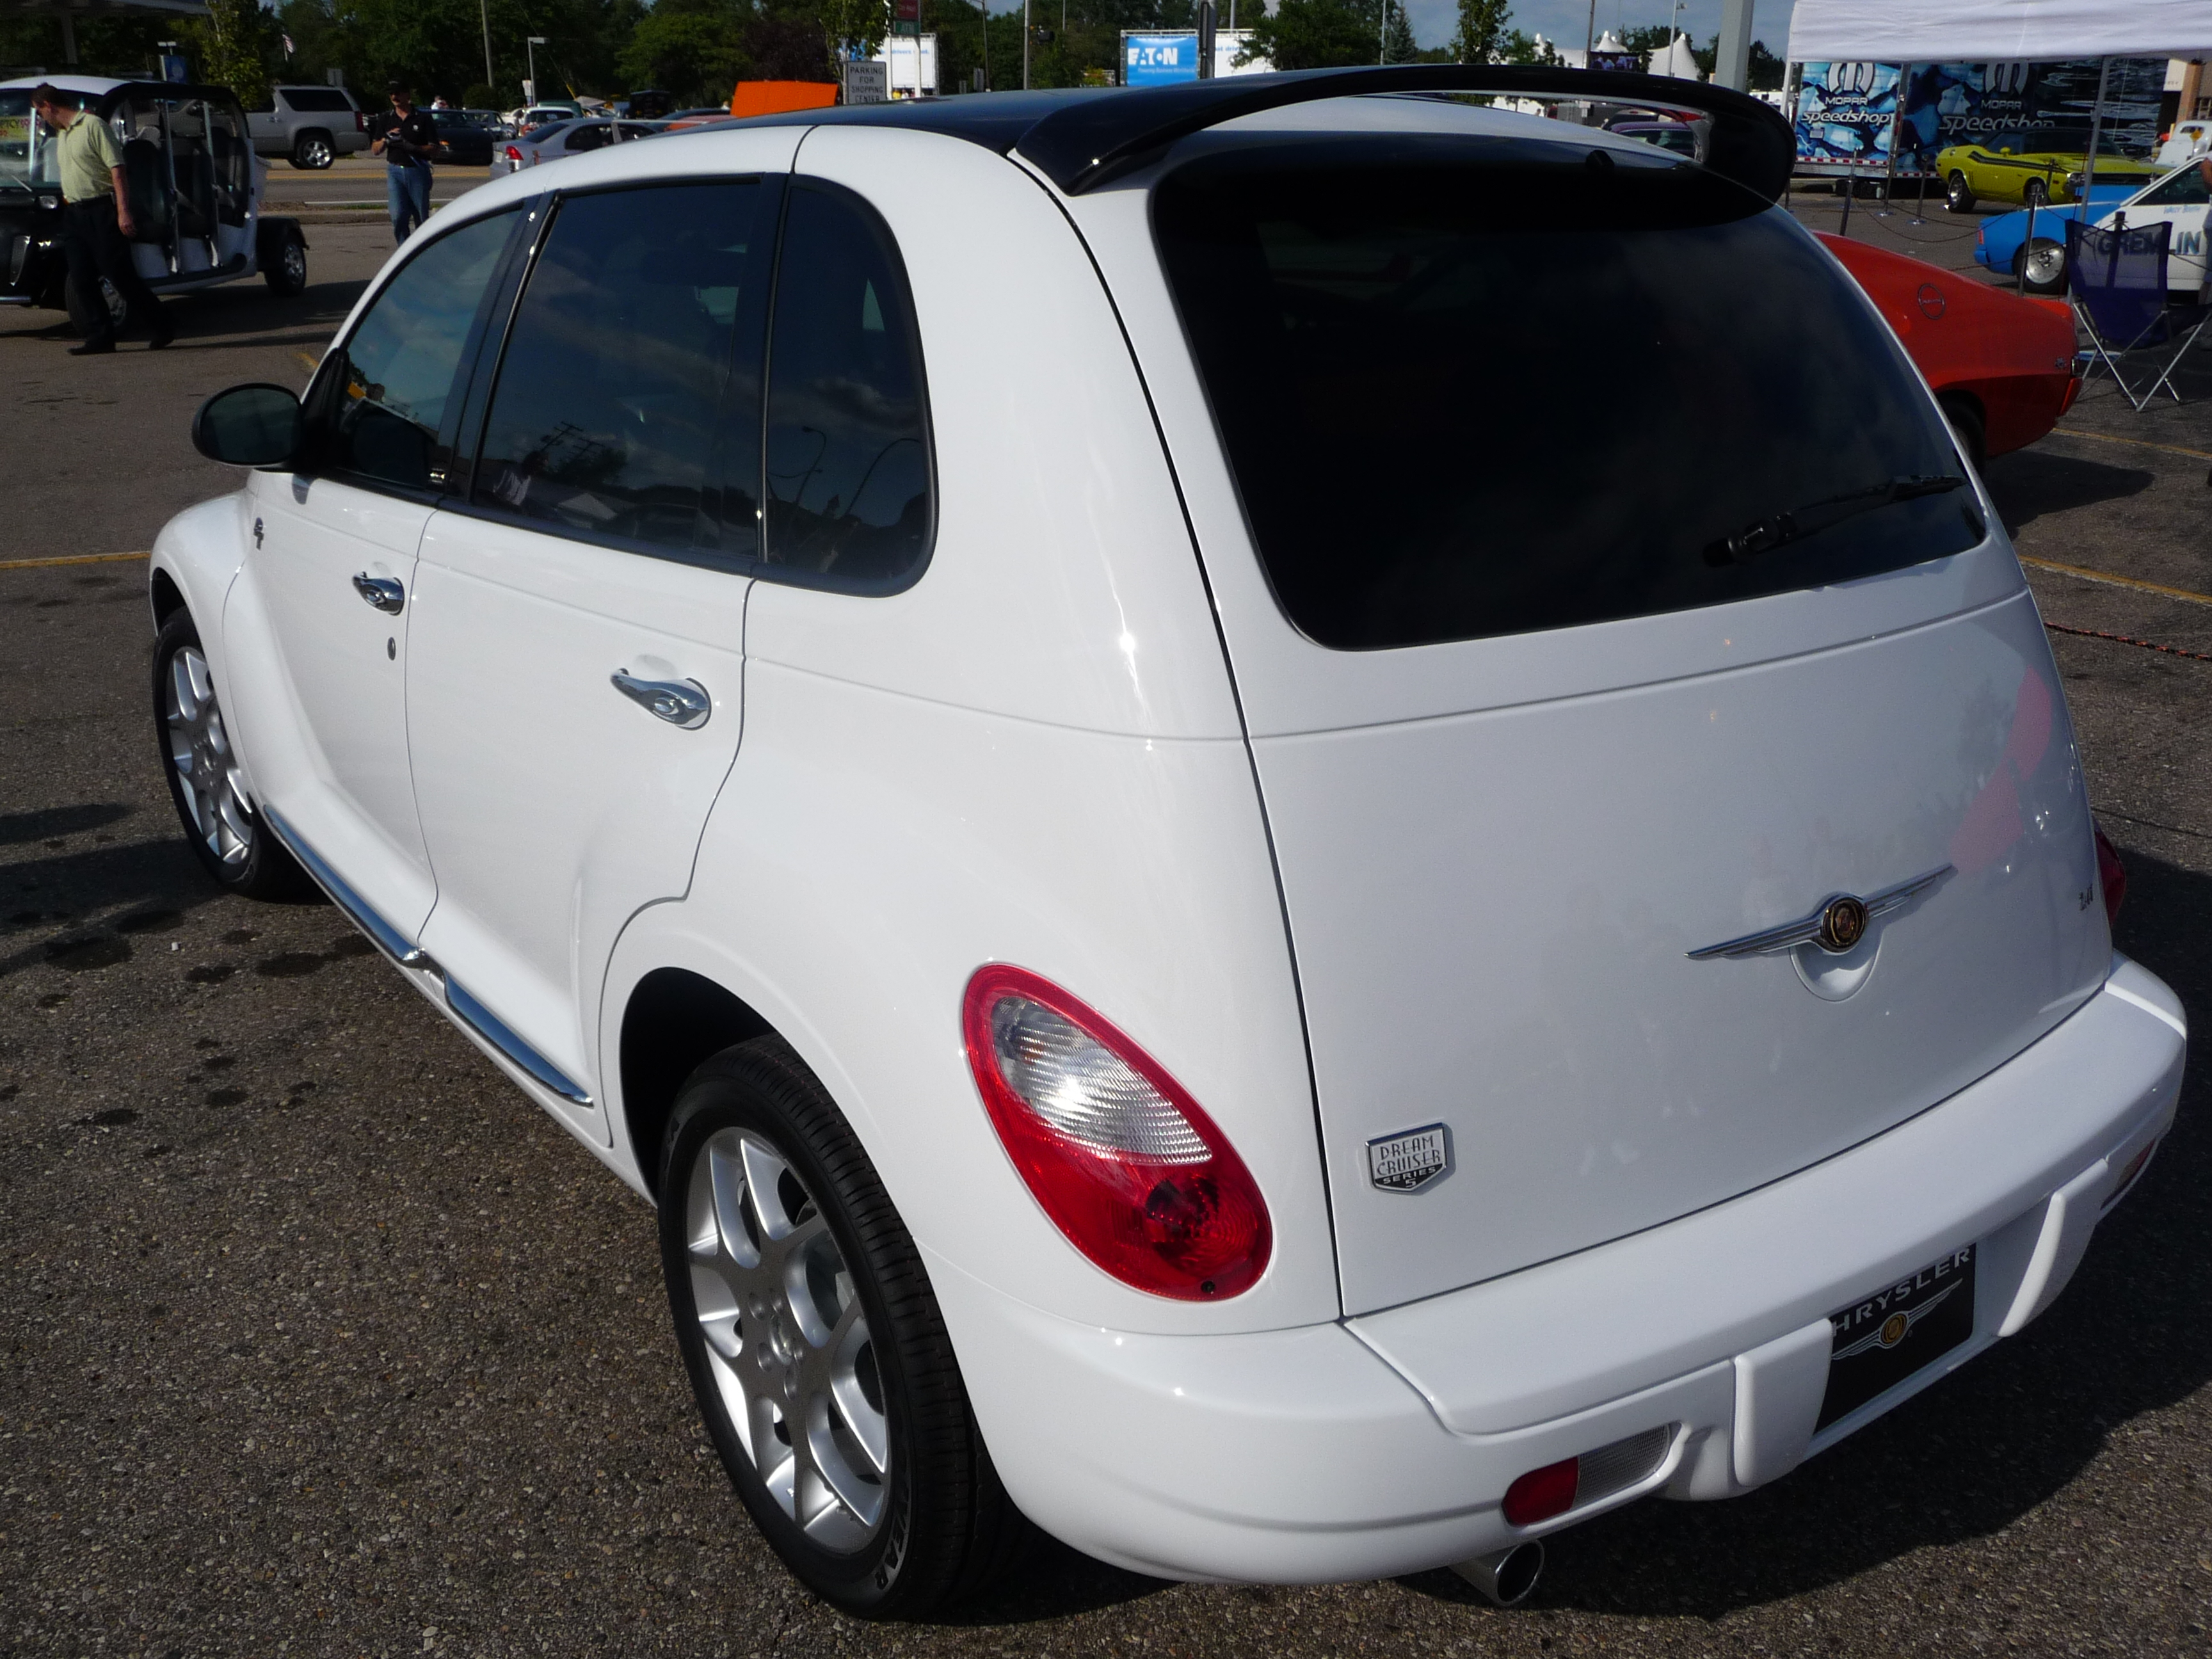 chrysler pt cruiser dream cruiser #1